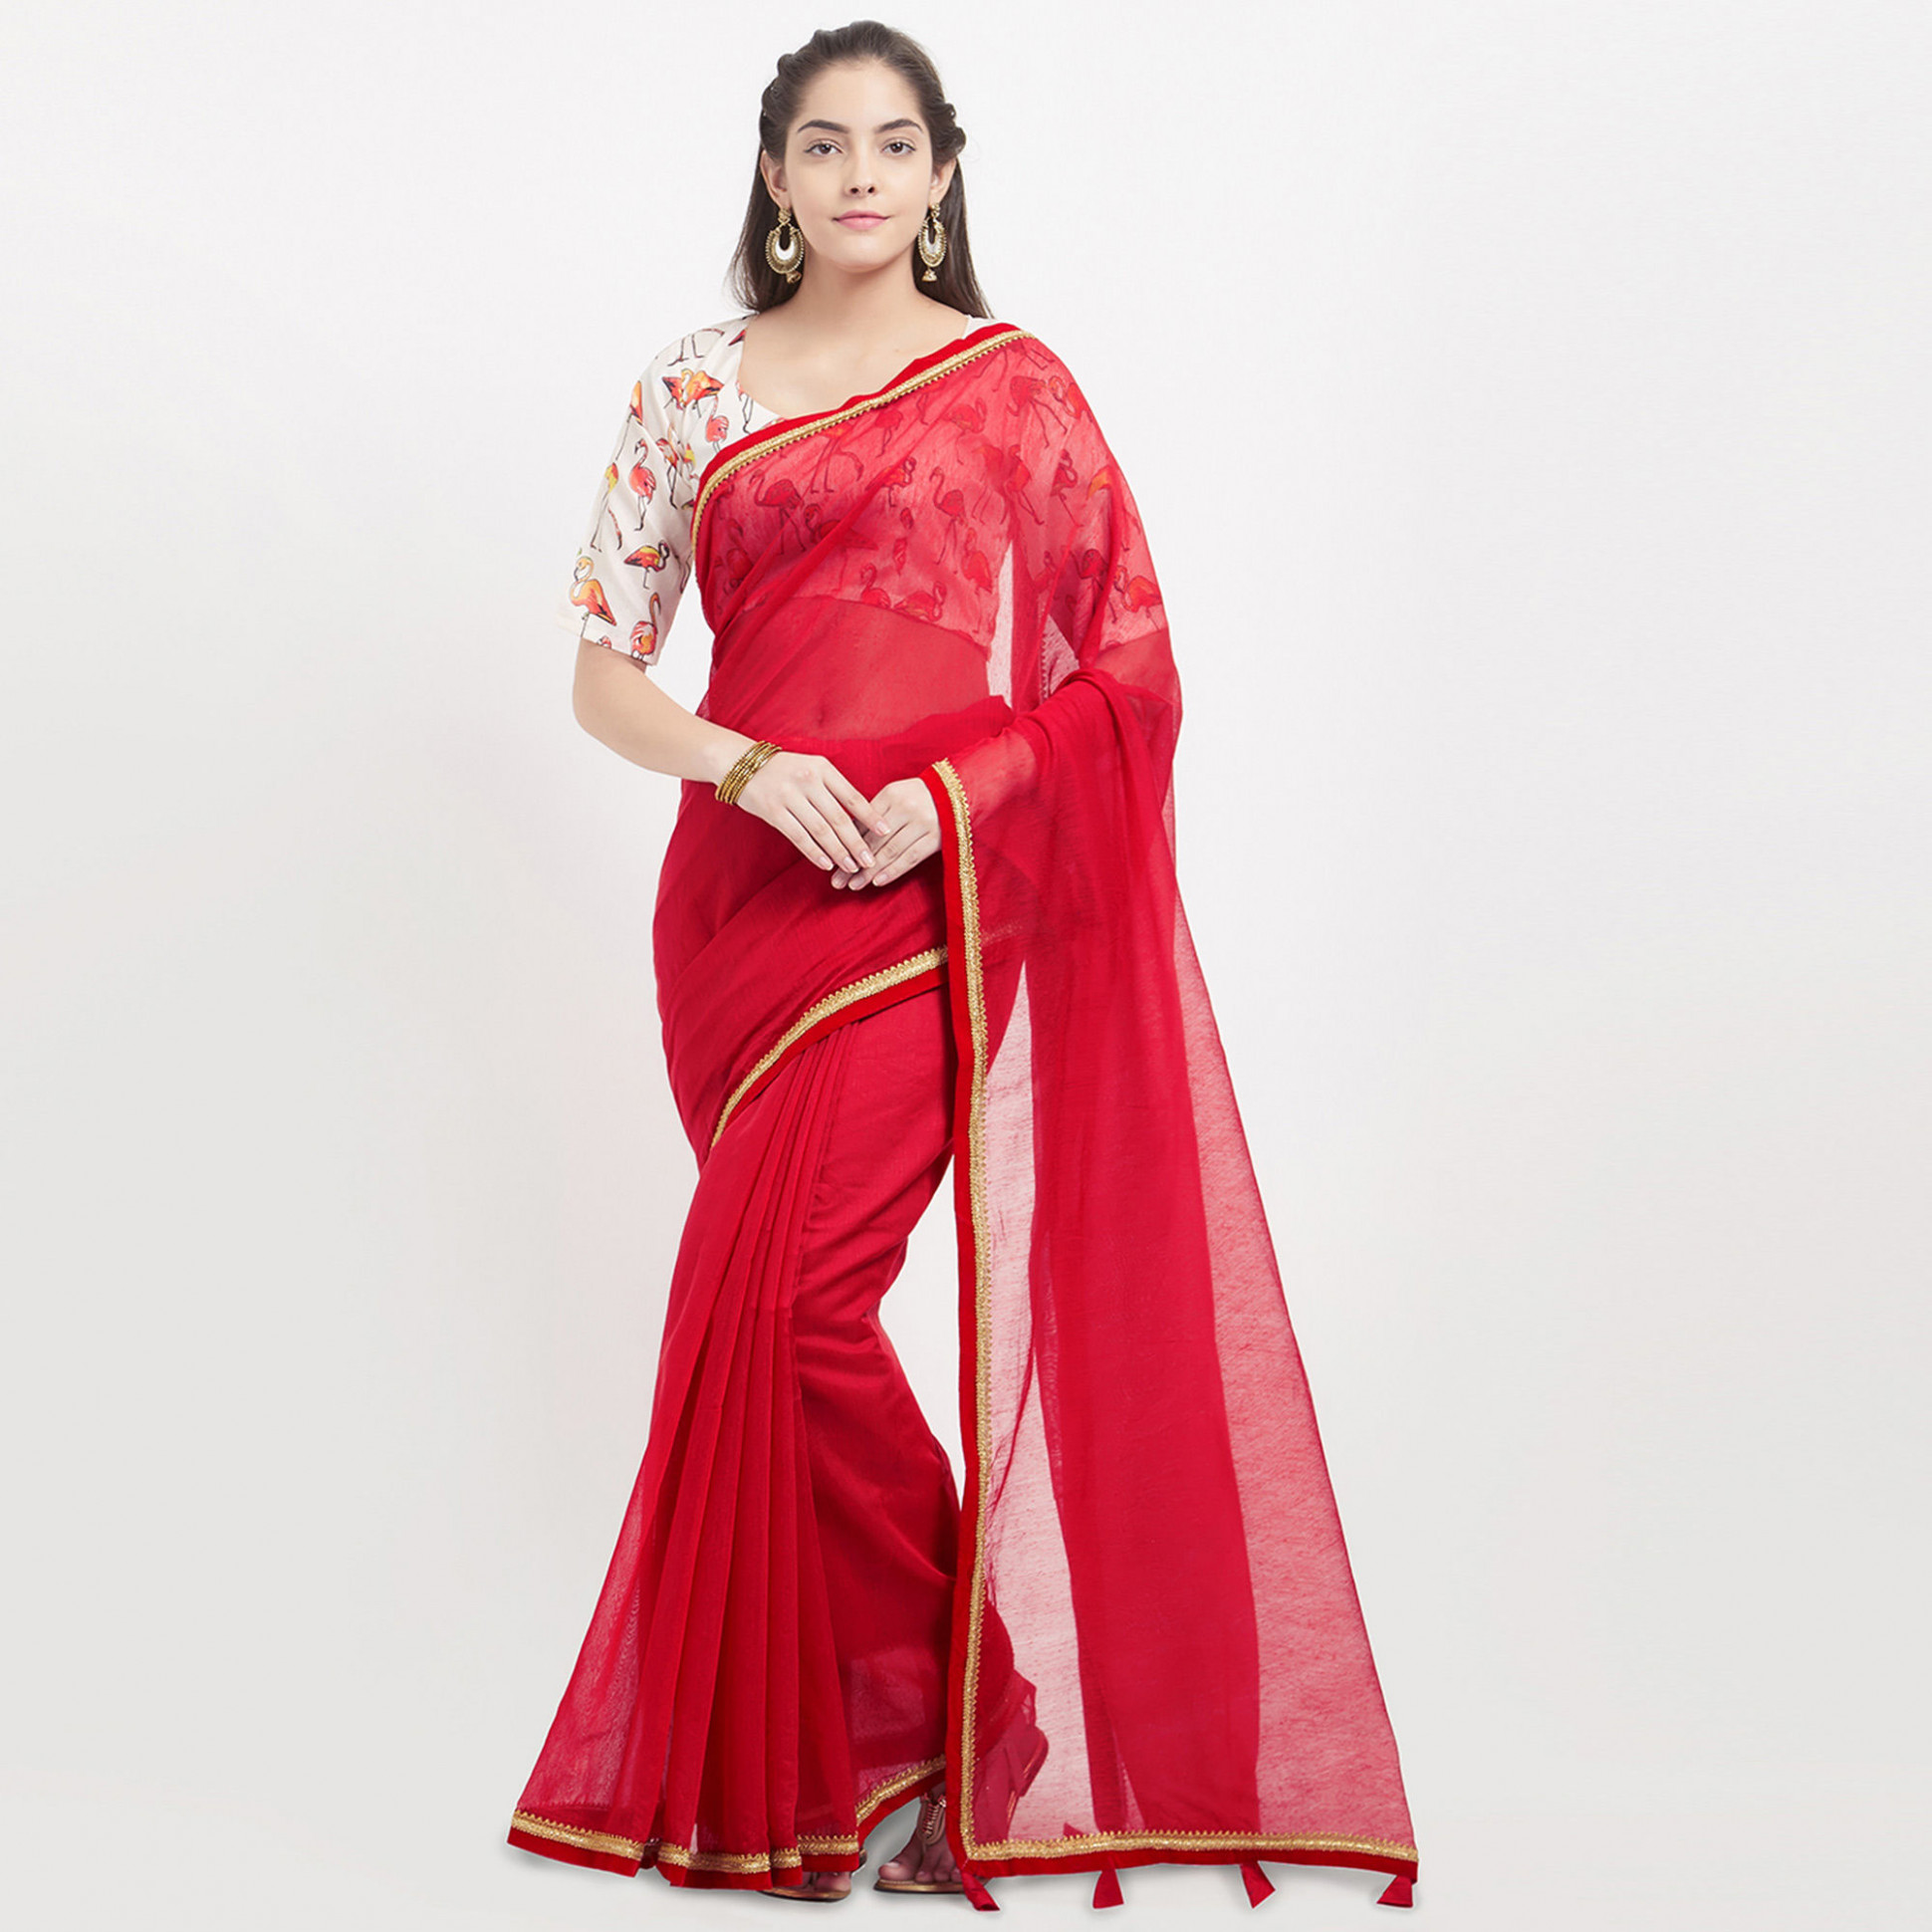 Buy Red Saree with Digital Printed Blouse online India